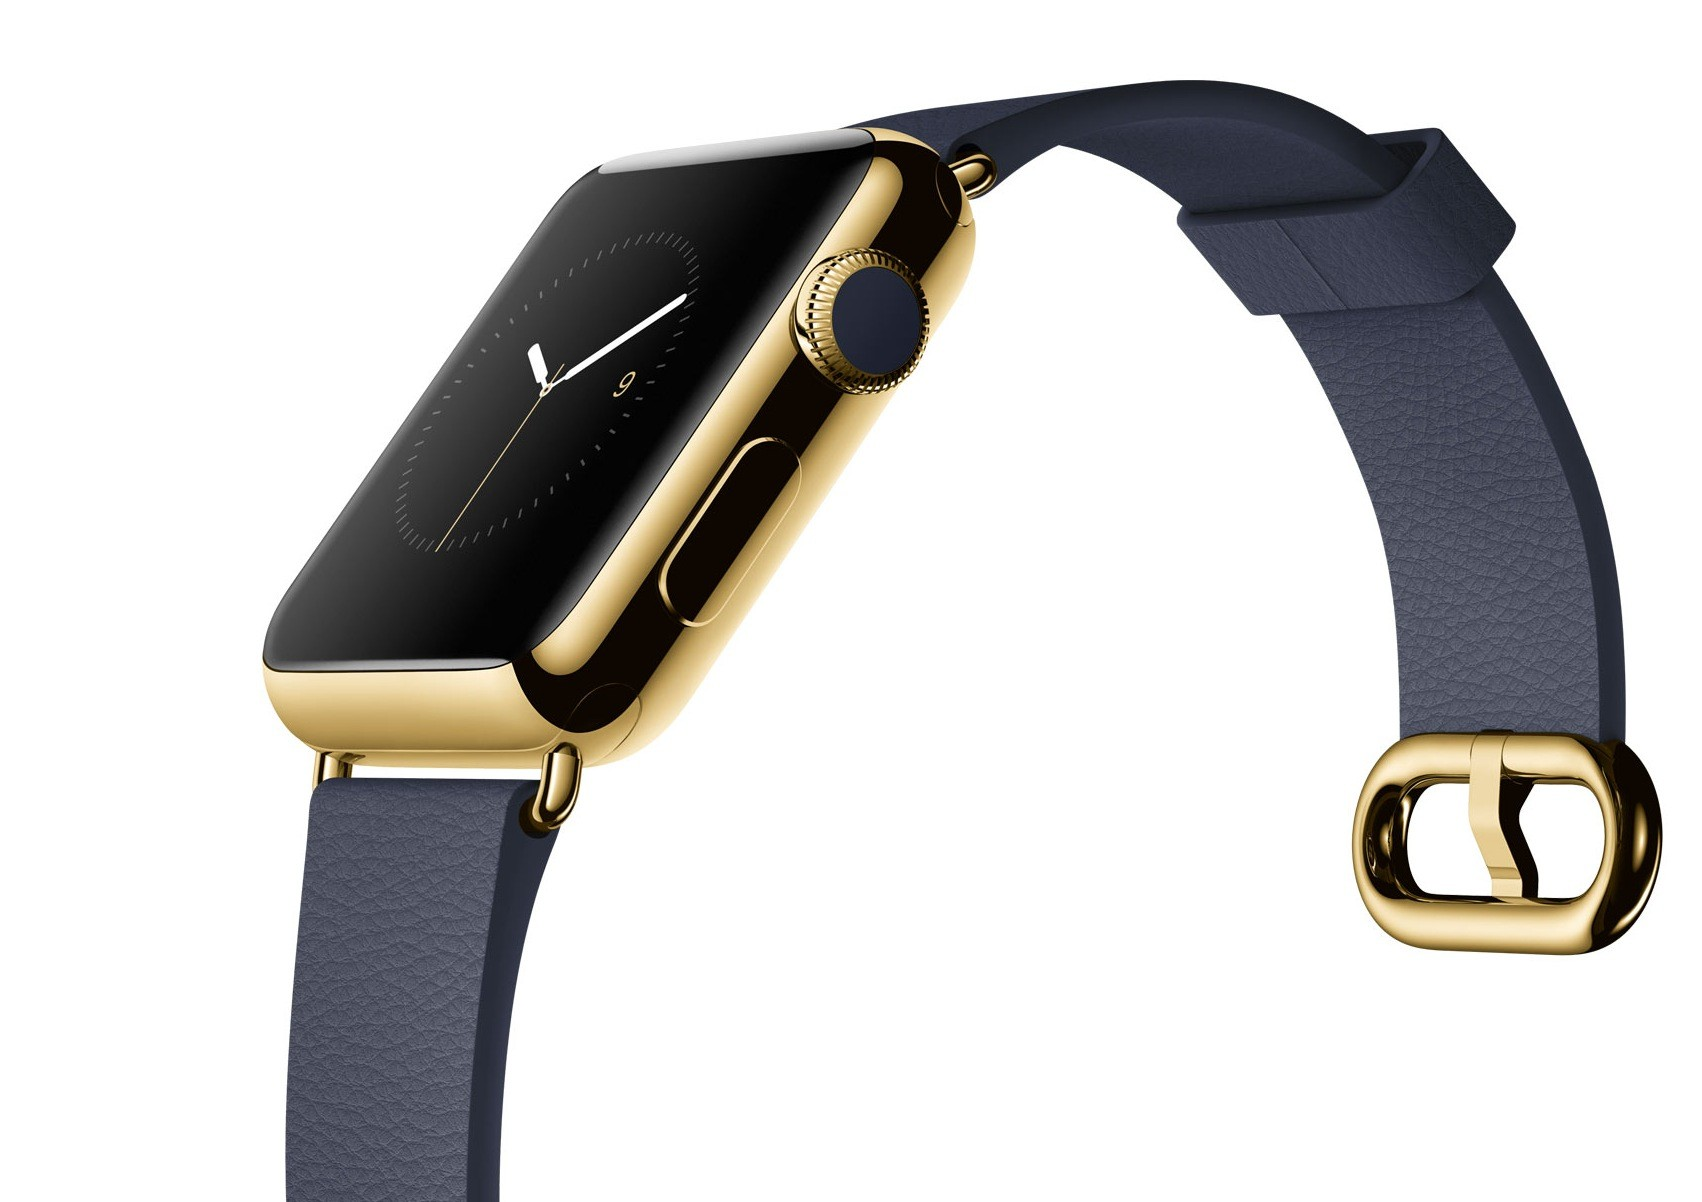 Apple Watch Edition, 18 karat gull, lanseres april 2015. Komplett med programvare, high tech i 2015.